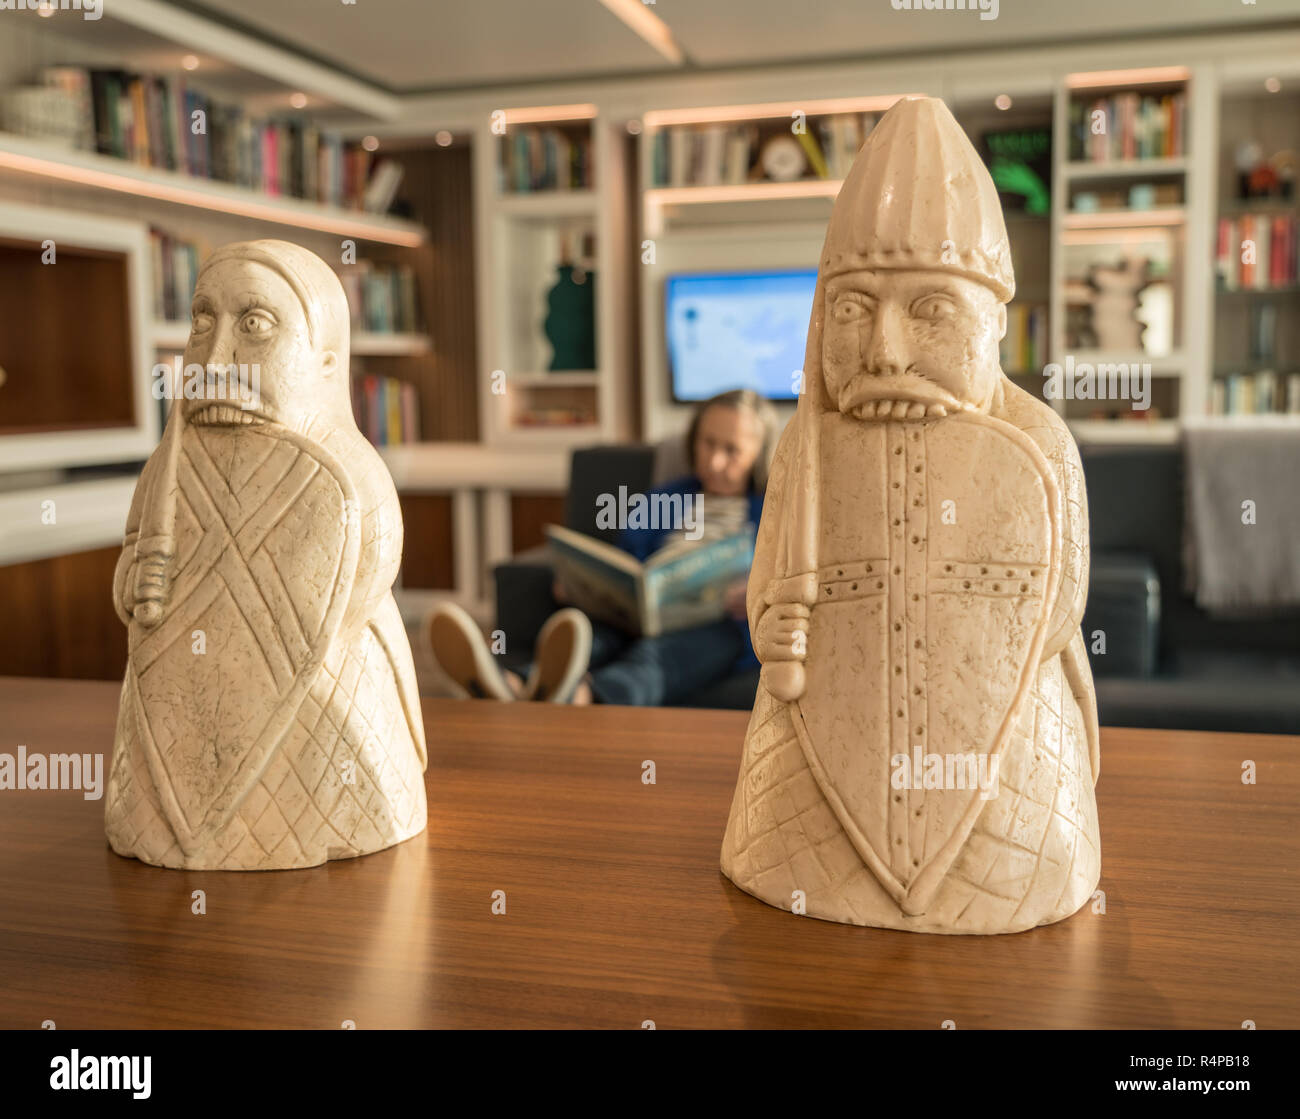 Traditional Lewis Chessmen on table in front of modern library - Stock Image